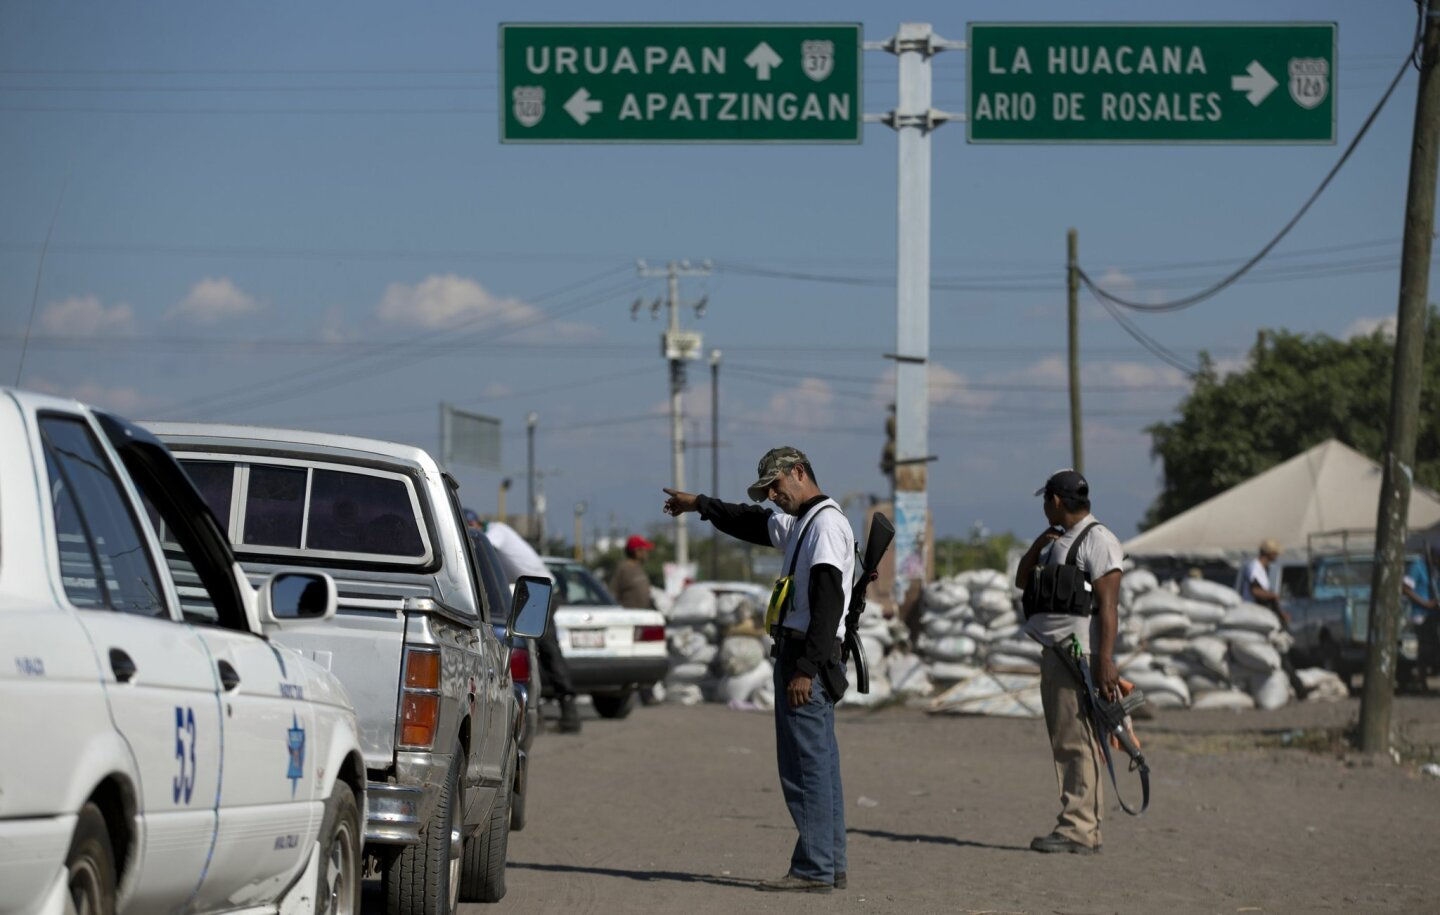 Men belonging to the Self-Defense Council of Michoacan, (CAM), inspect vehicles at a checkpoint in the entrance to the town of Nueva Italia, Mexico, Monday, Jan. 13, 2014. A day earlier the self-defenses encountered resistance as they tried to rid the town of the Knights Templar drug cartel while t